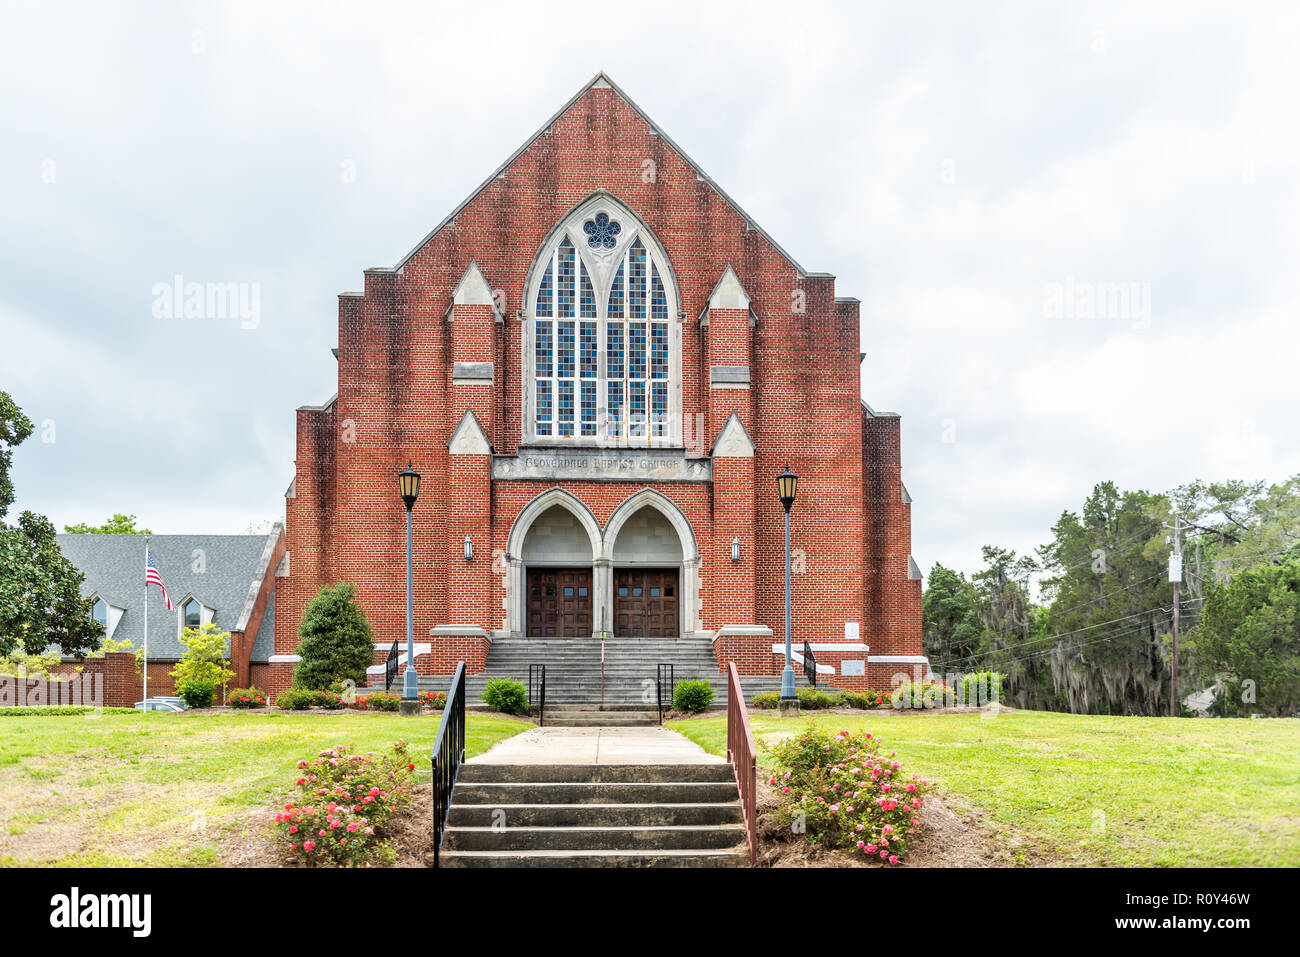 Montgomery, USA - April 21, 2018: Exterior facade of brick Cloverdale church steps entrance during day in capital Alabama city, nobody, on Fairview Av - Stock Image